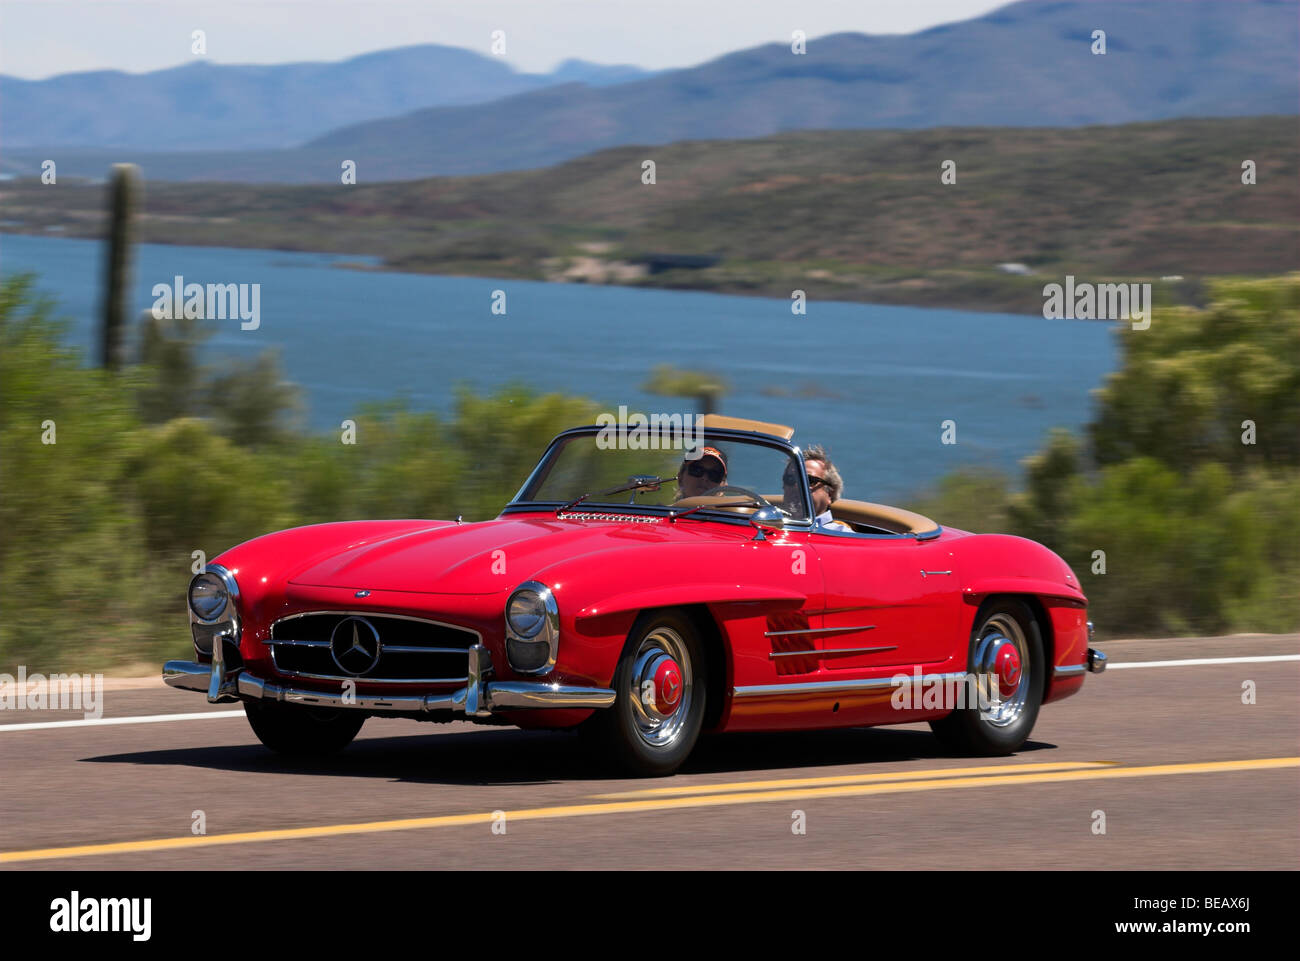 mercedes 300 sl roadster stock photos mercedes 300 sl roadster stock images alamy. Black Bedroom Furniture Sets. Home Design Ideas